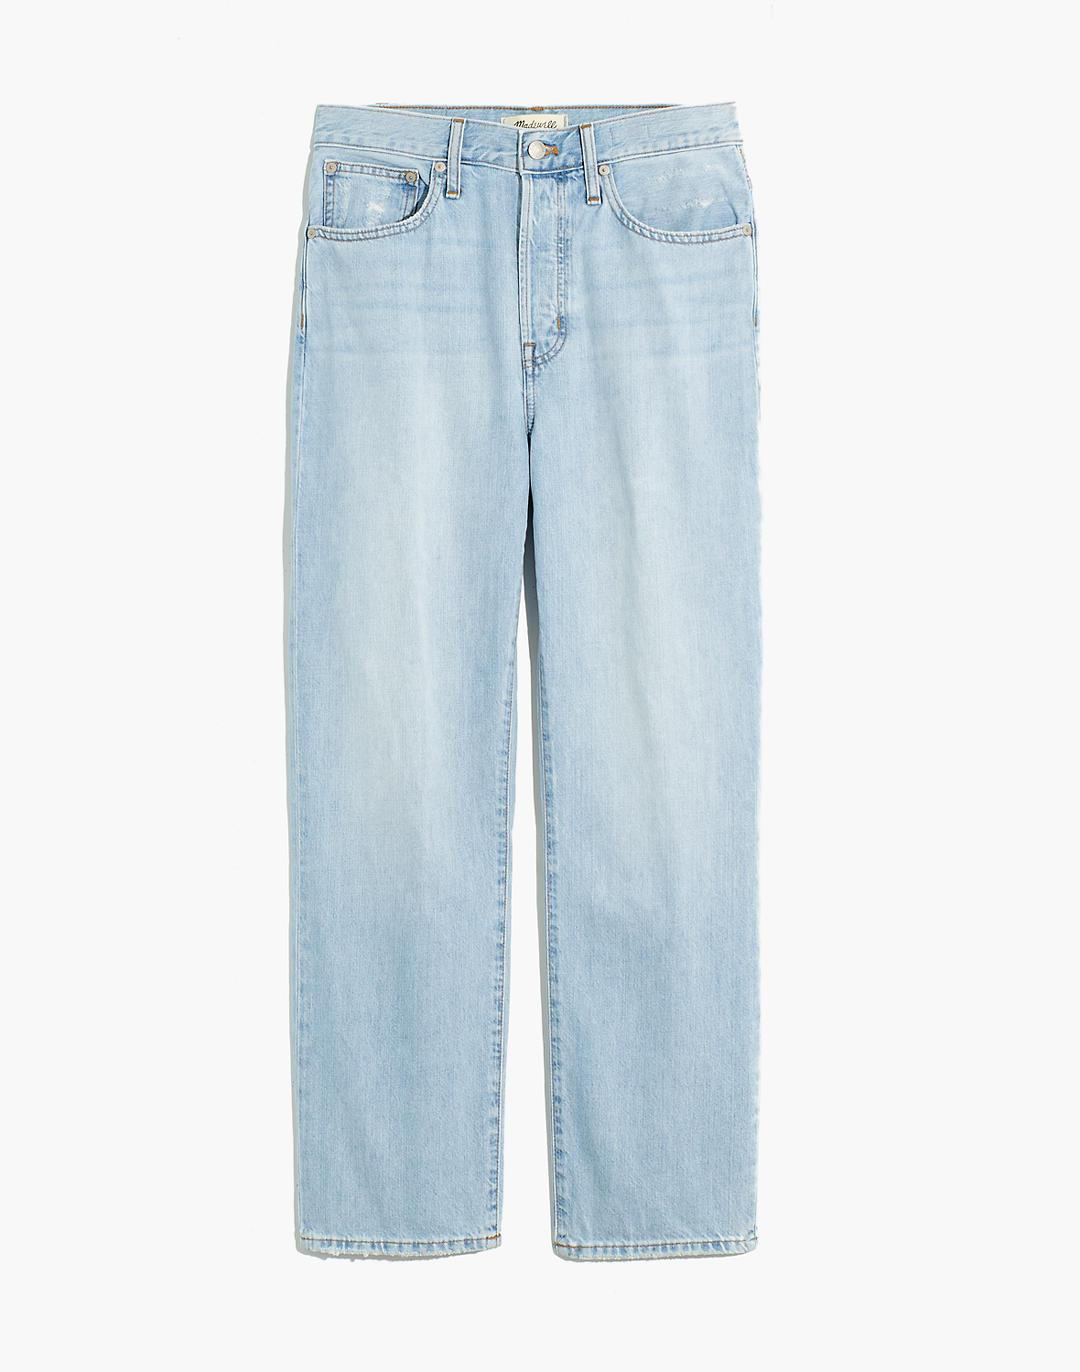 The Dadjean in Fitzgerald Wash